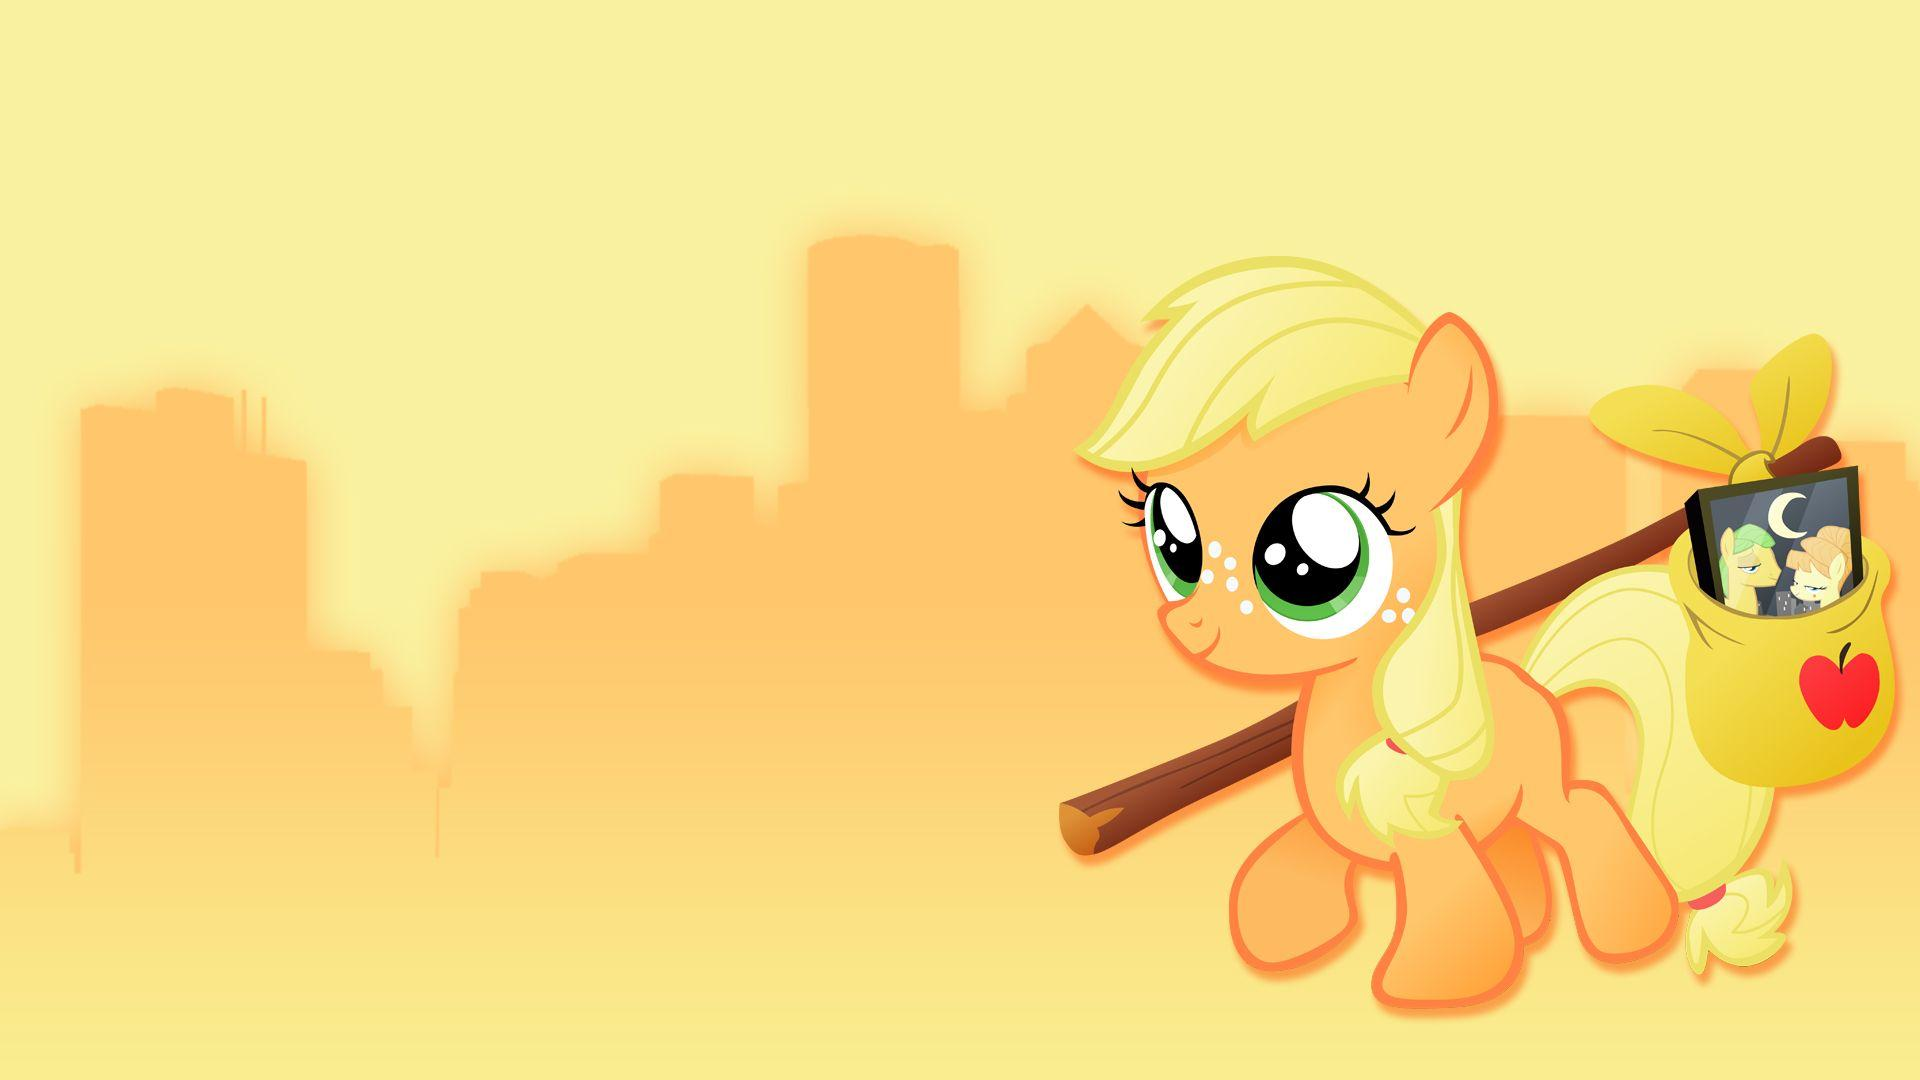 Applejack Wallpapers, Awesome Applejack Pictures and Wallpapers ...